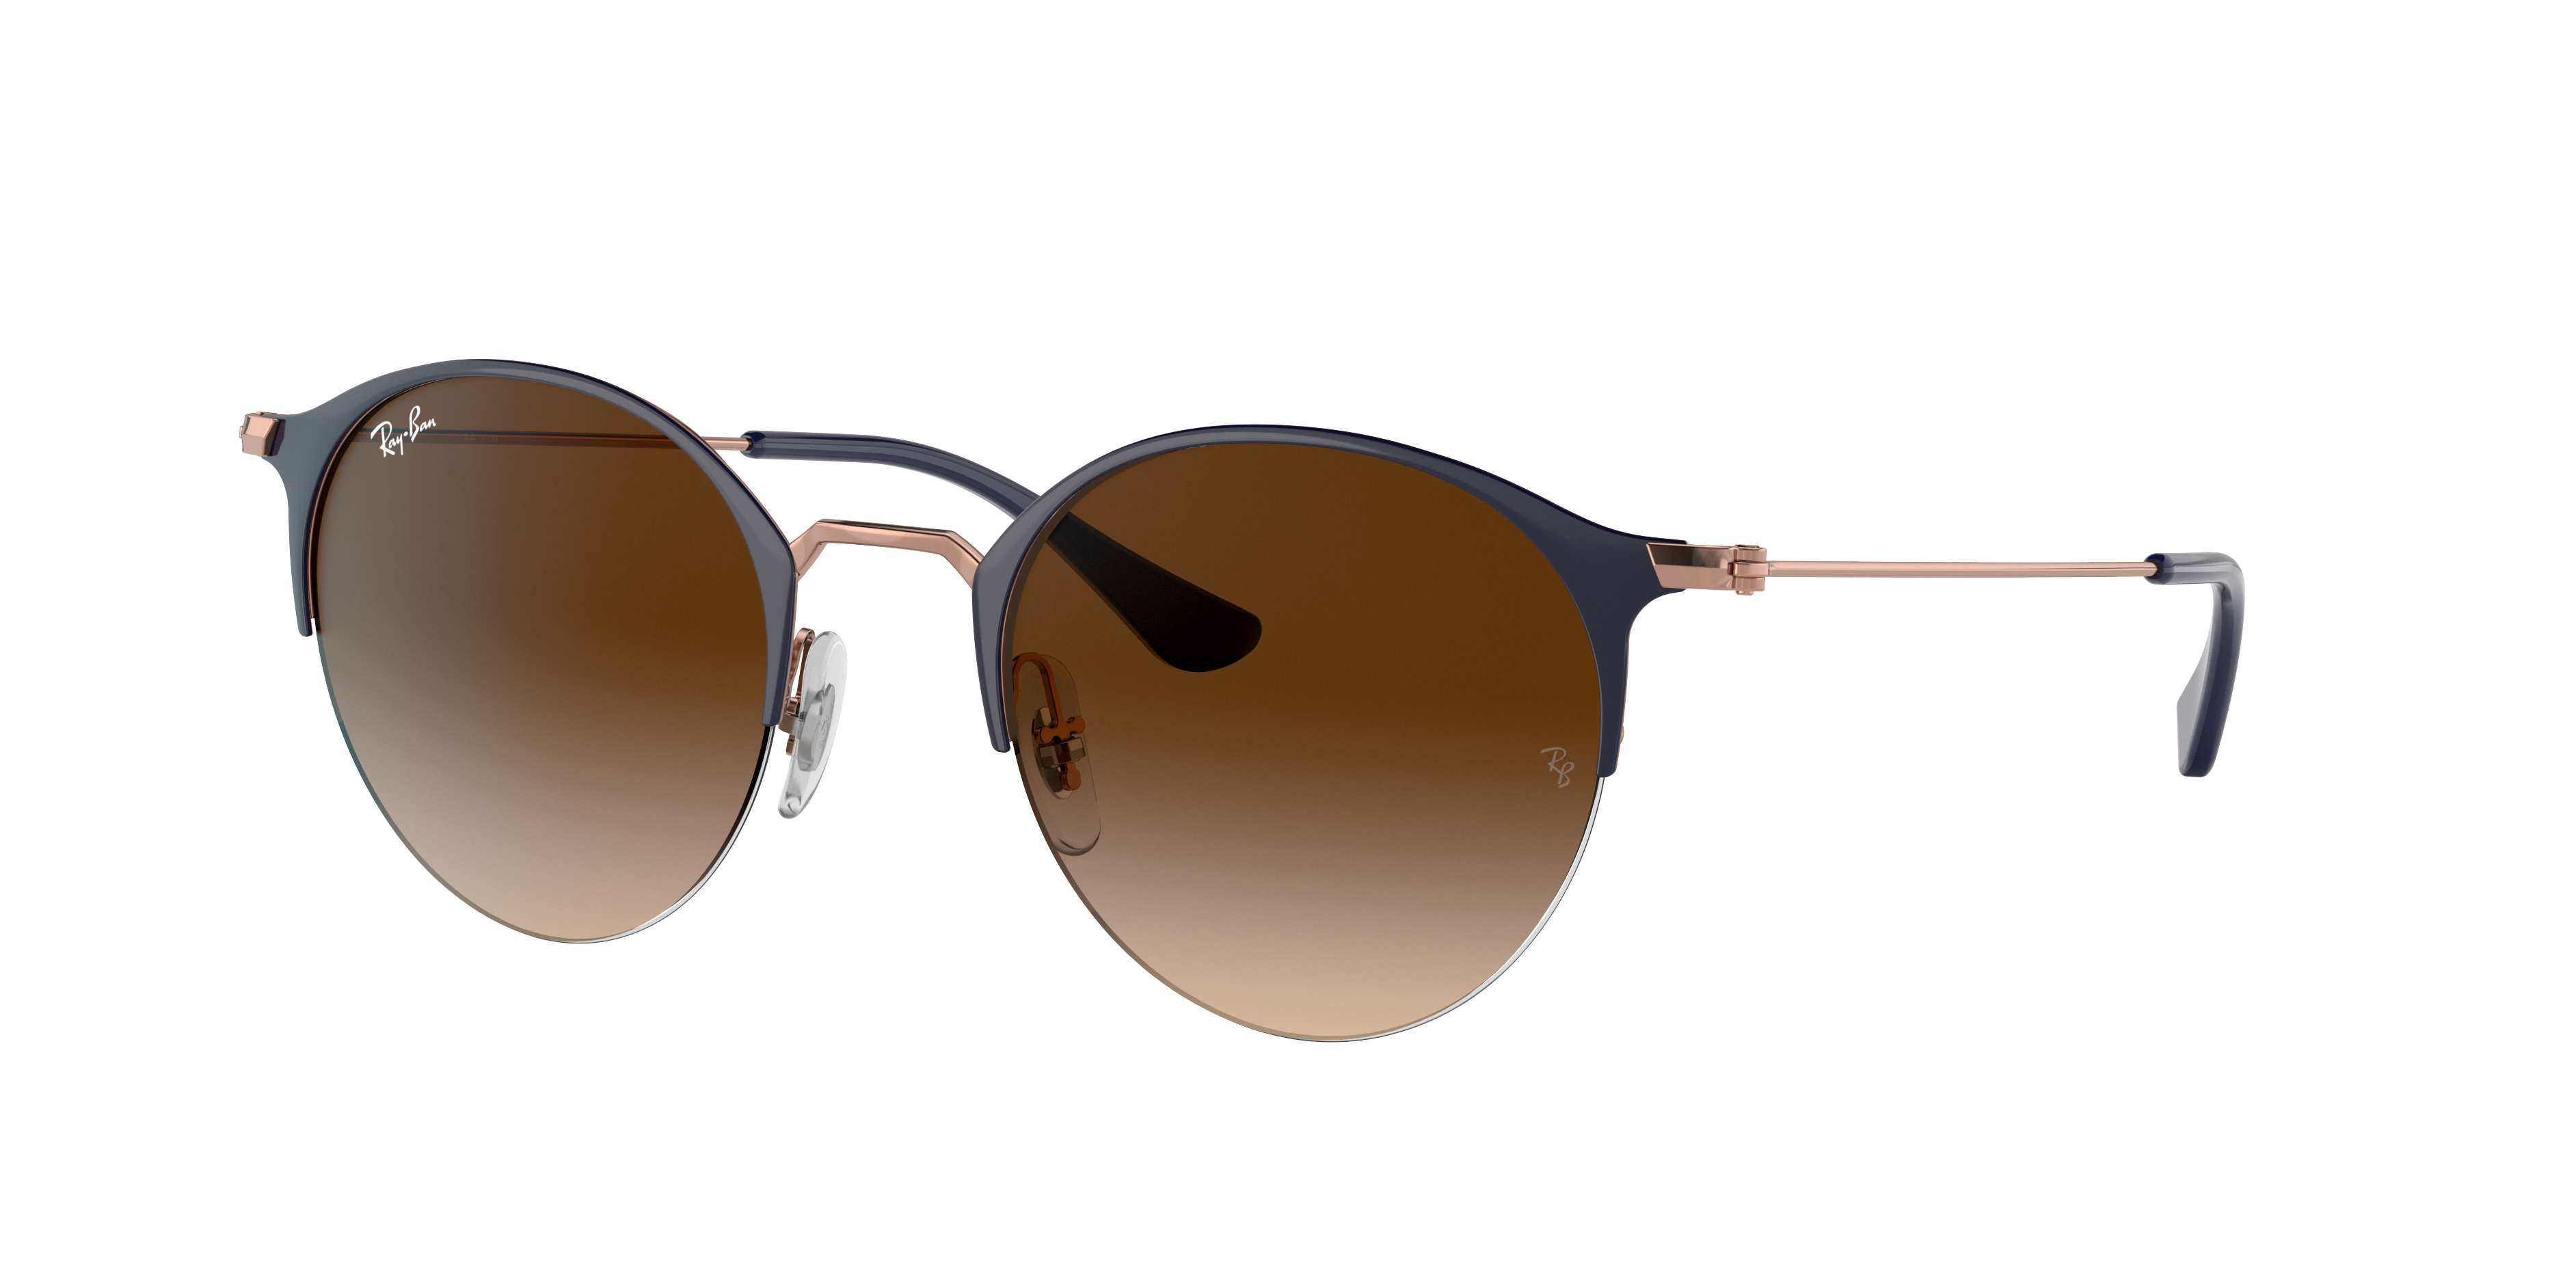 Ray-Ban Rb3578 Bronze-Copper, Brown Lenses - RB3578